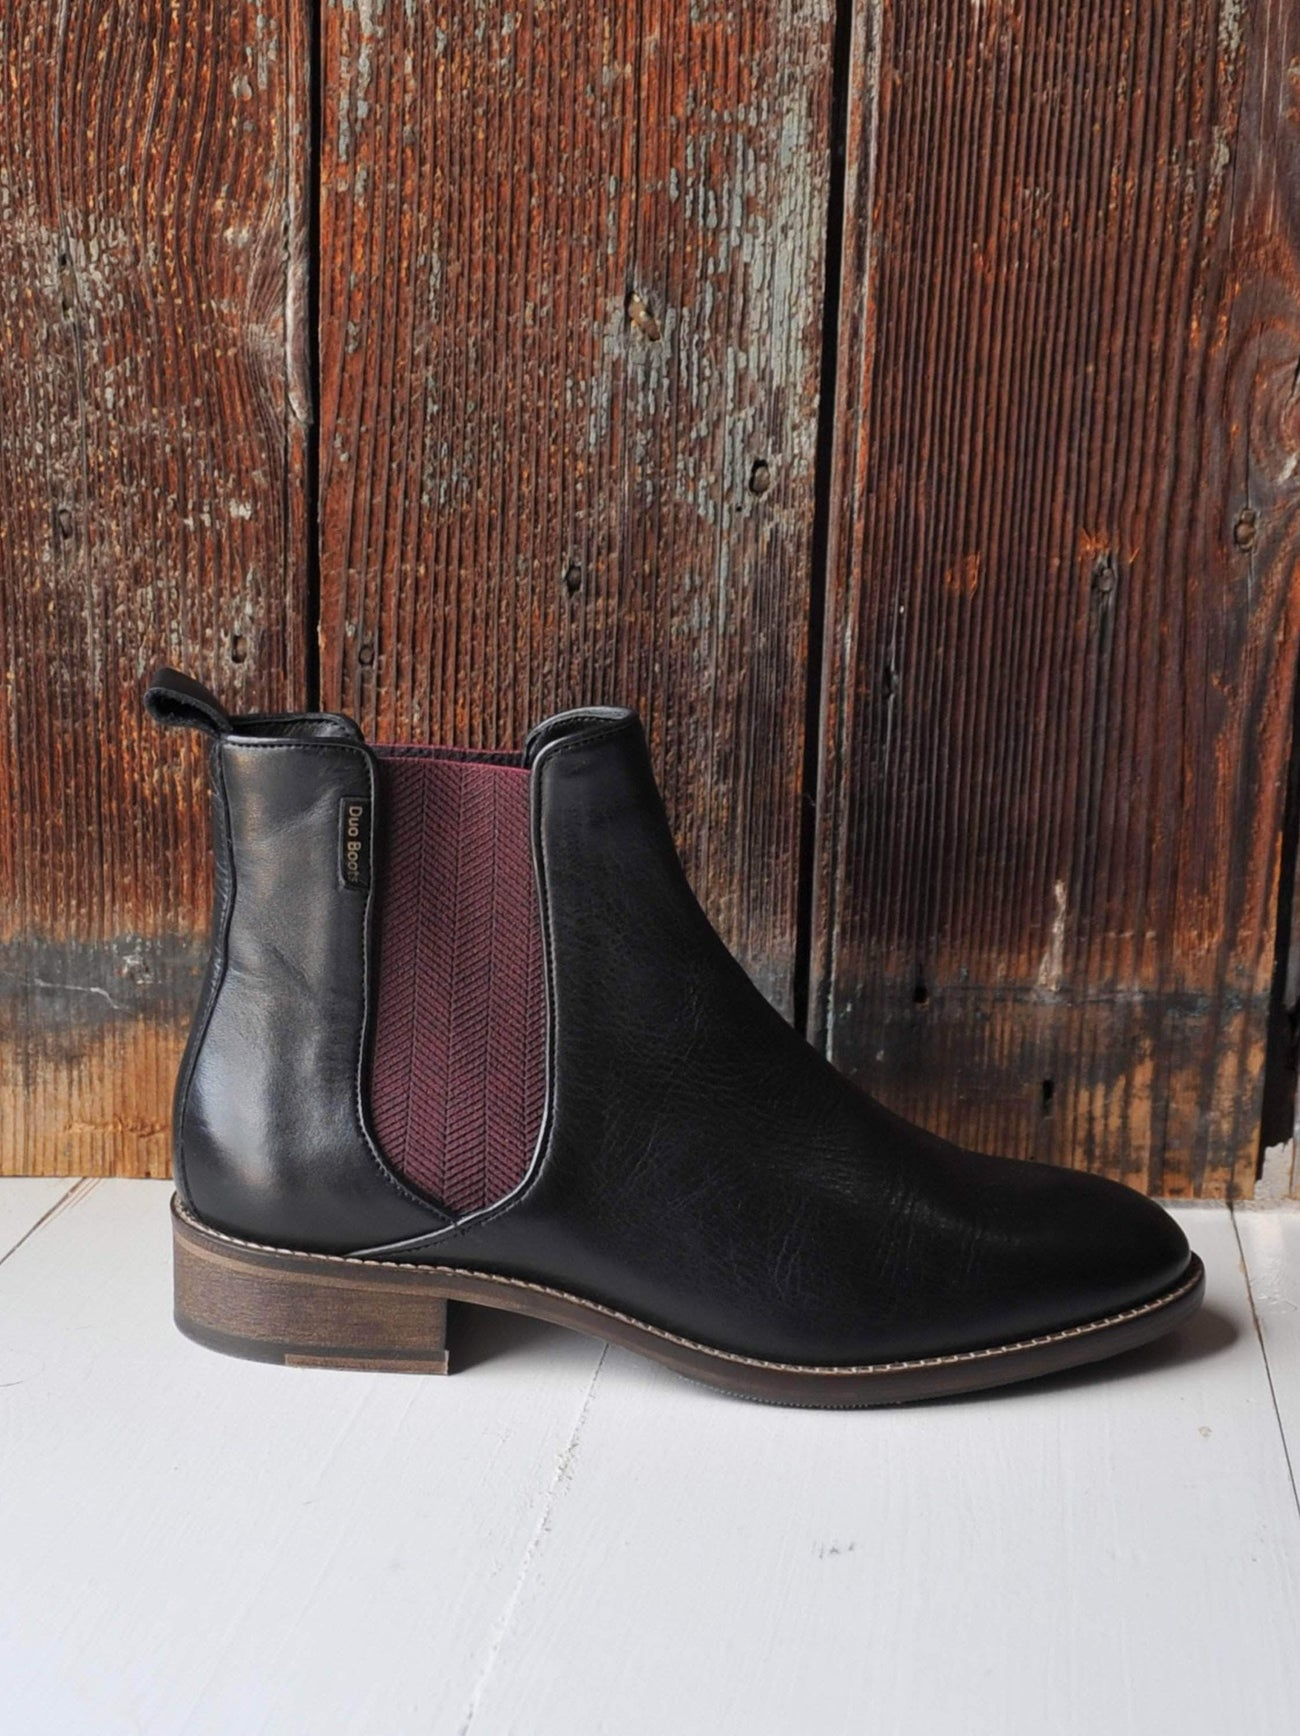 This Chelsea boot has an almond toe shape and a removable padded in sock.